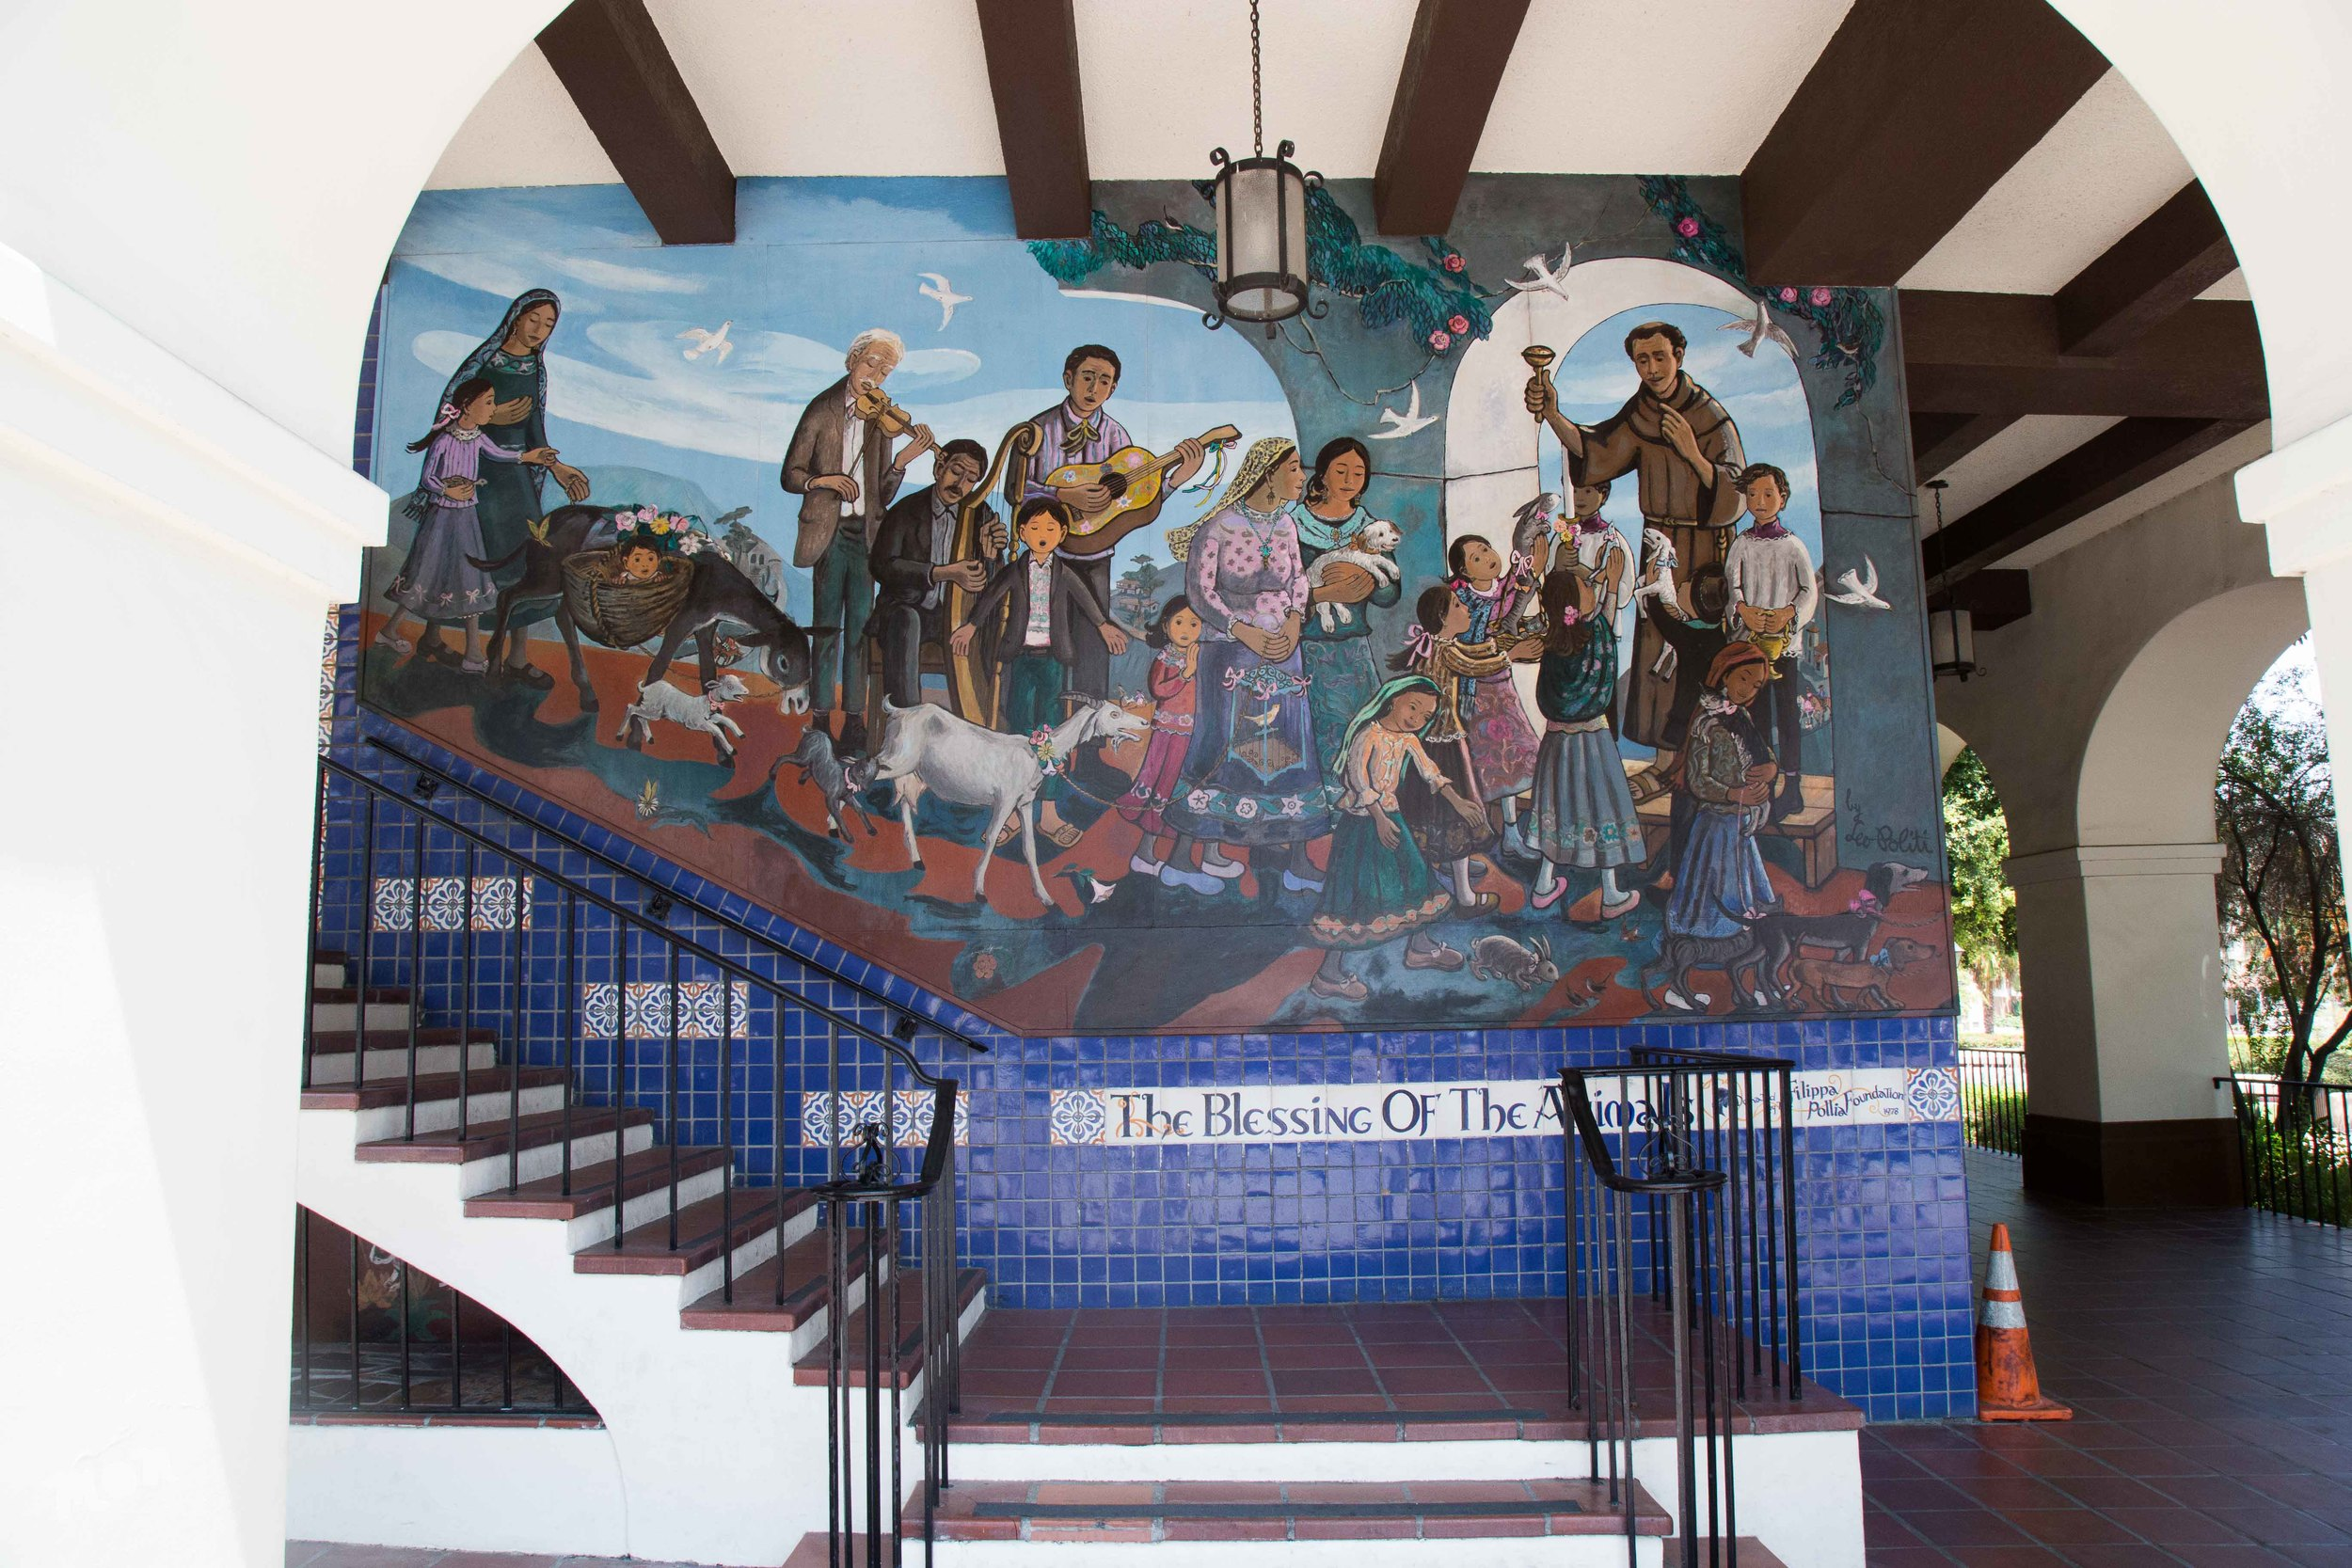 Leo Politi's 'Blessing Of The Animals' Mural (1978)